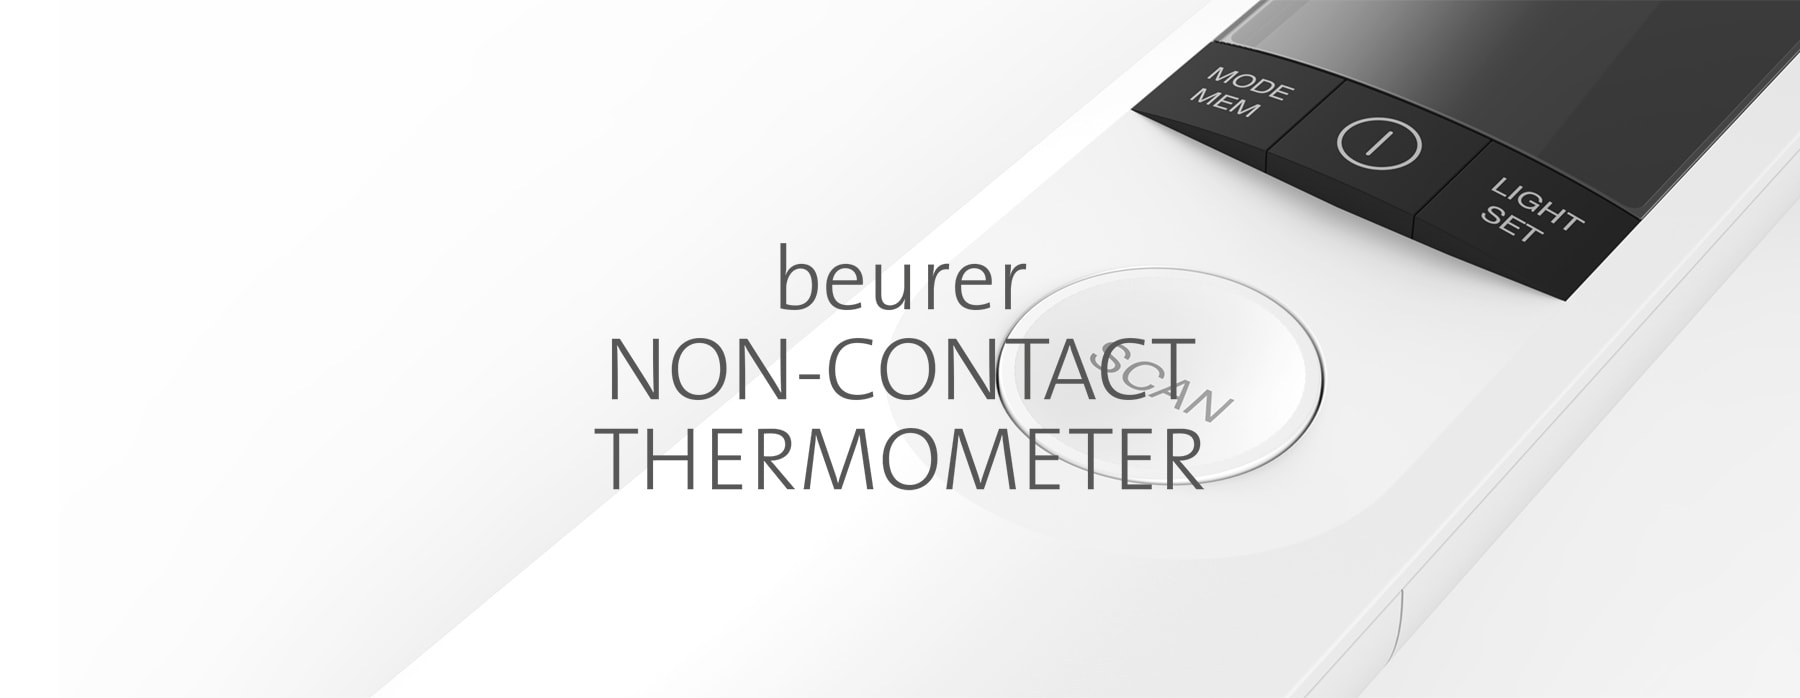 beurer non contact thermometer header